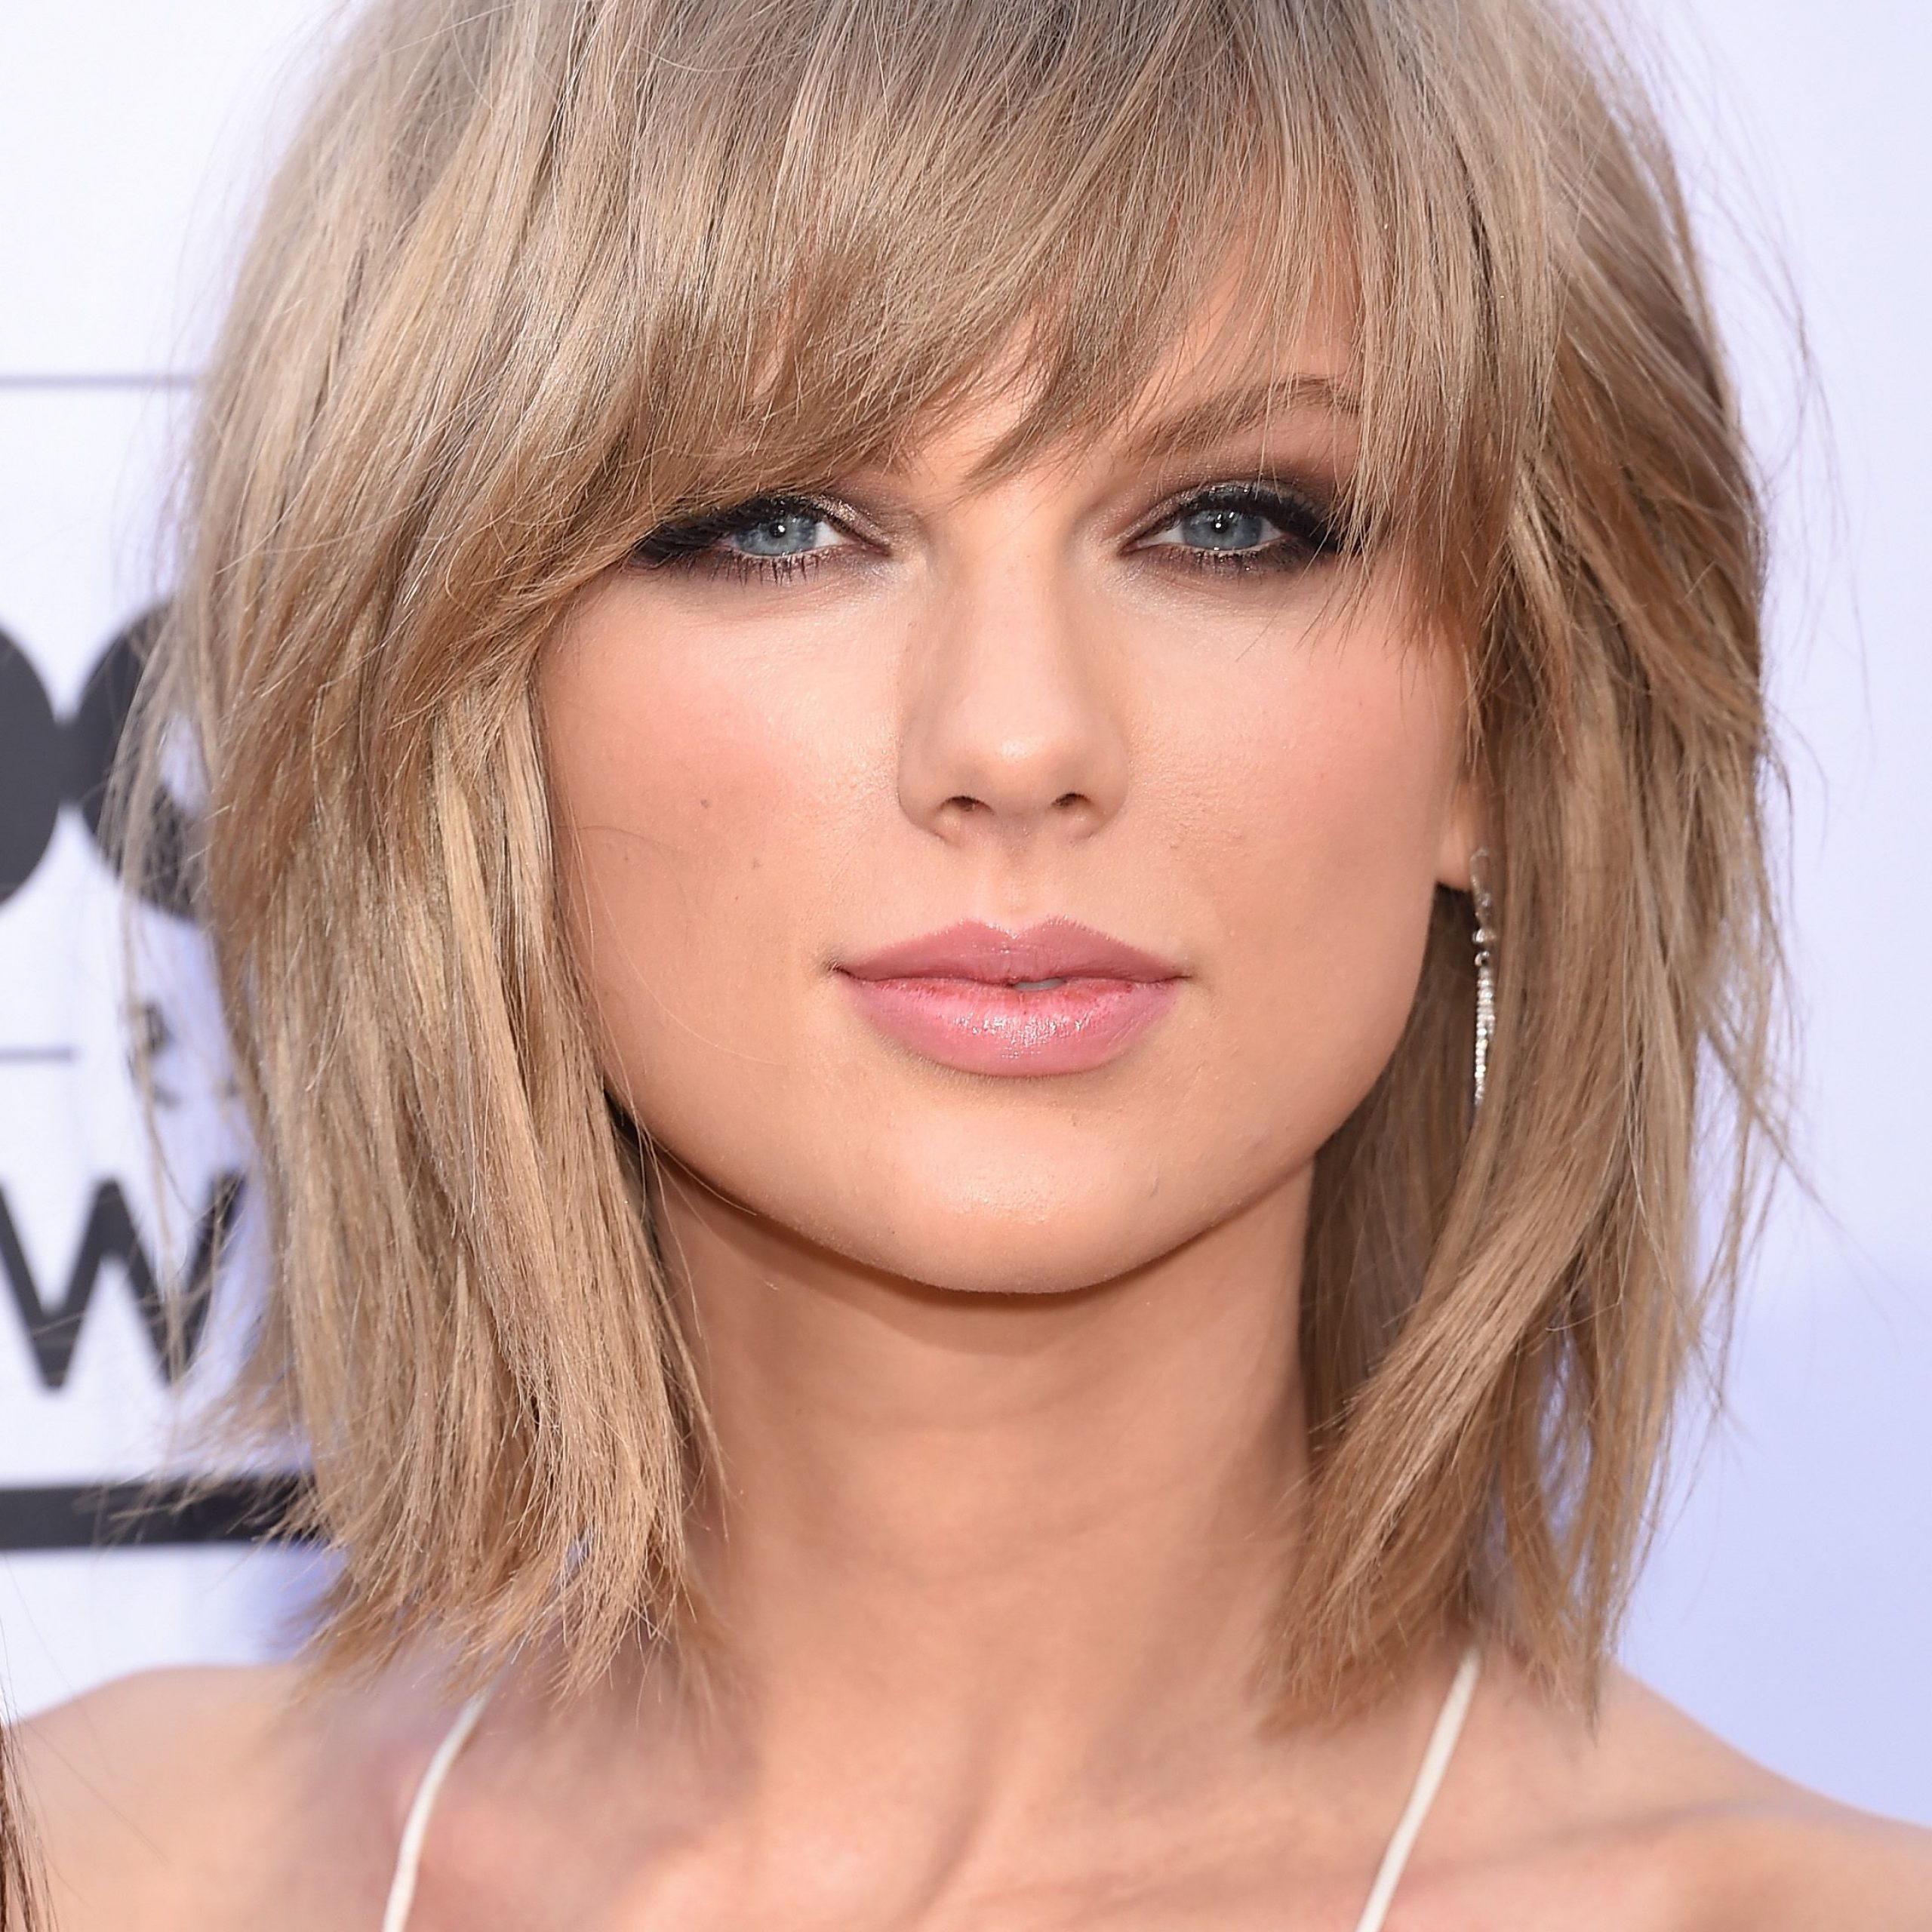 32 Celebrity Shag Haircut Ideas – Shag Hairstyle Long And Short Regarding Current Short Shag Haircuts With Side Bangs (Gallery 10 of 20)